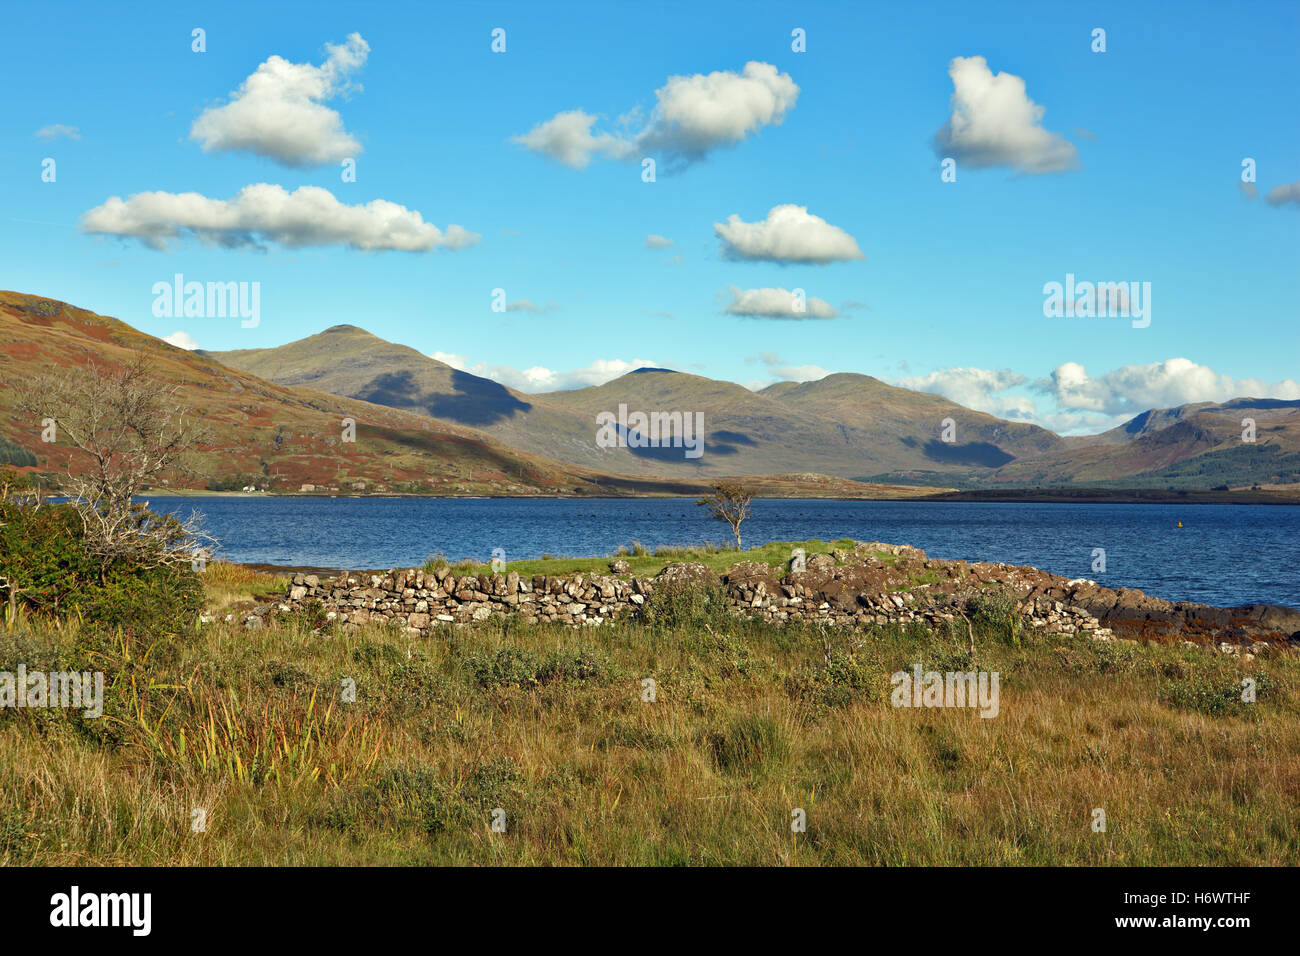 Light fluffy clouds over Loch Scridain on the Isle of Mull with Ben More at the head of the loch on the left - Stock Image